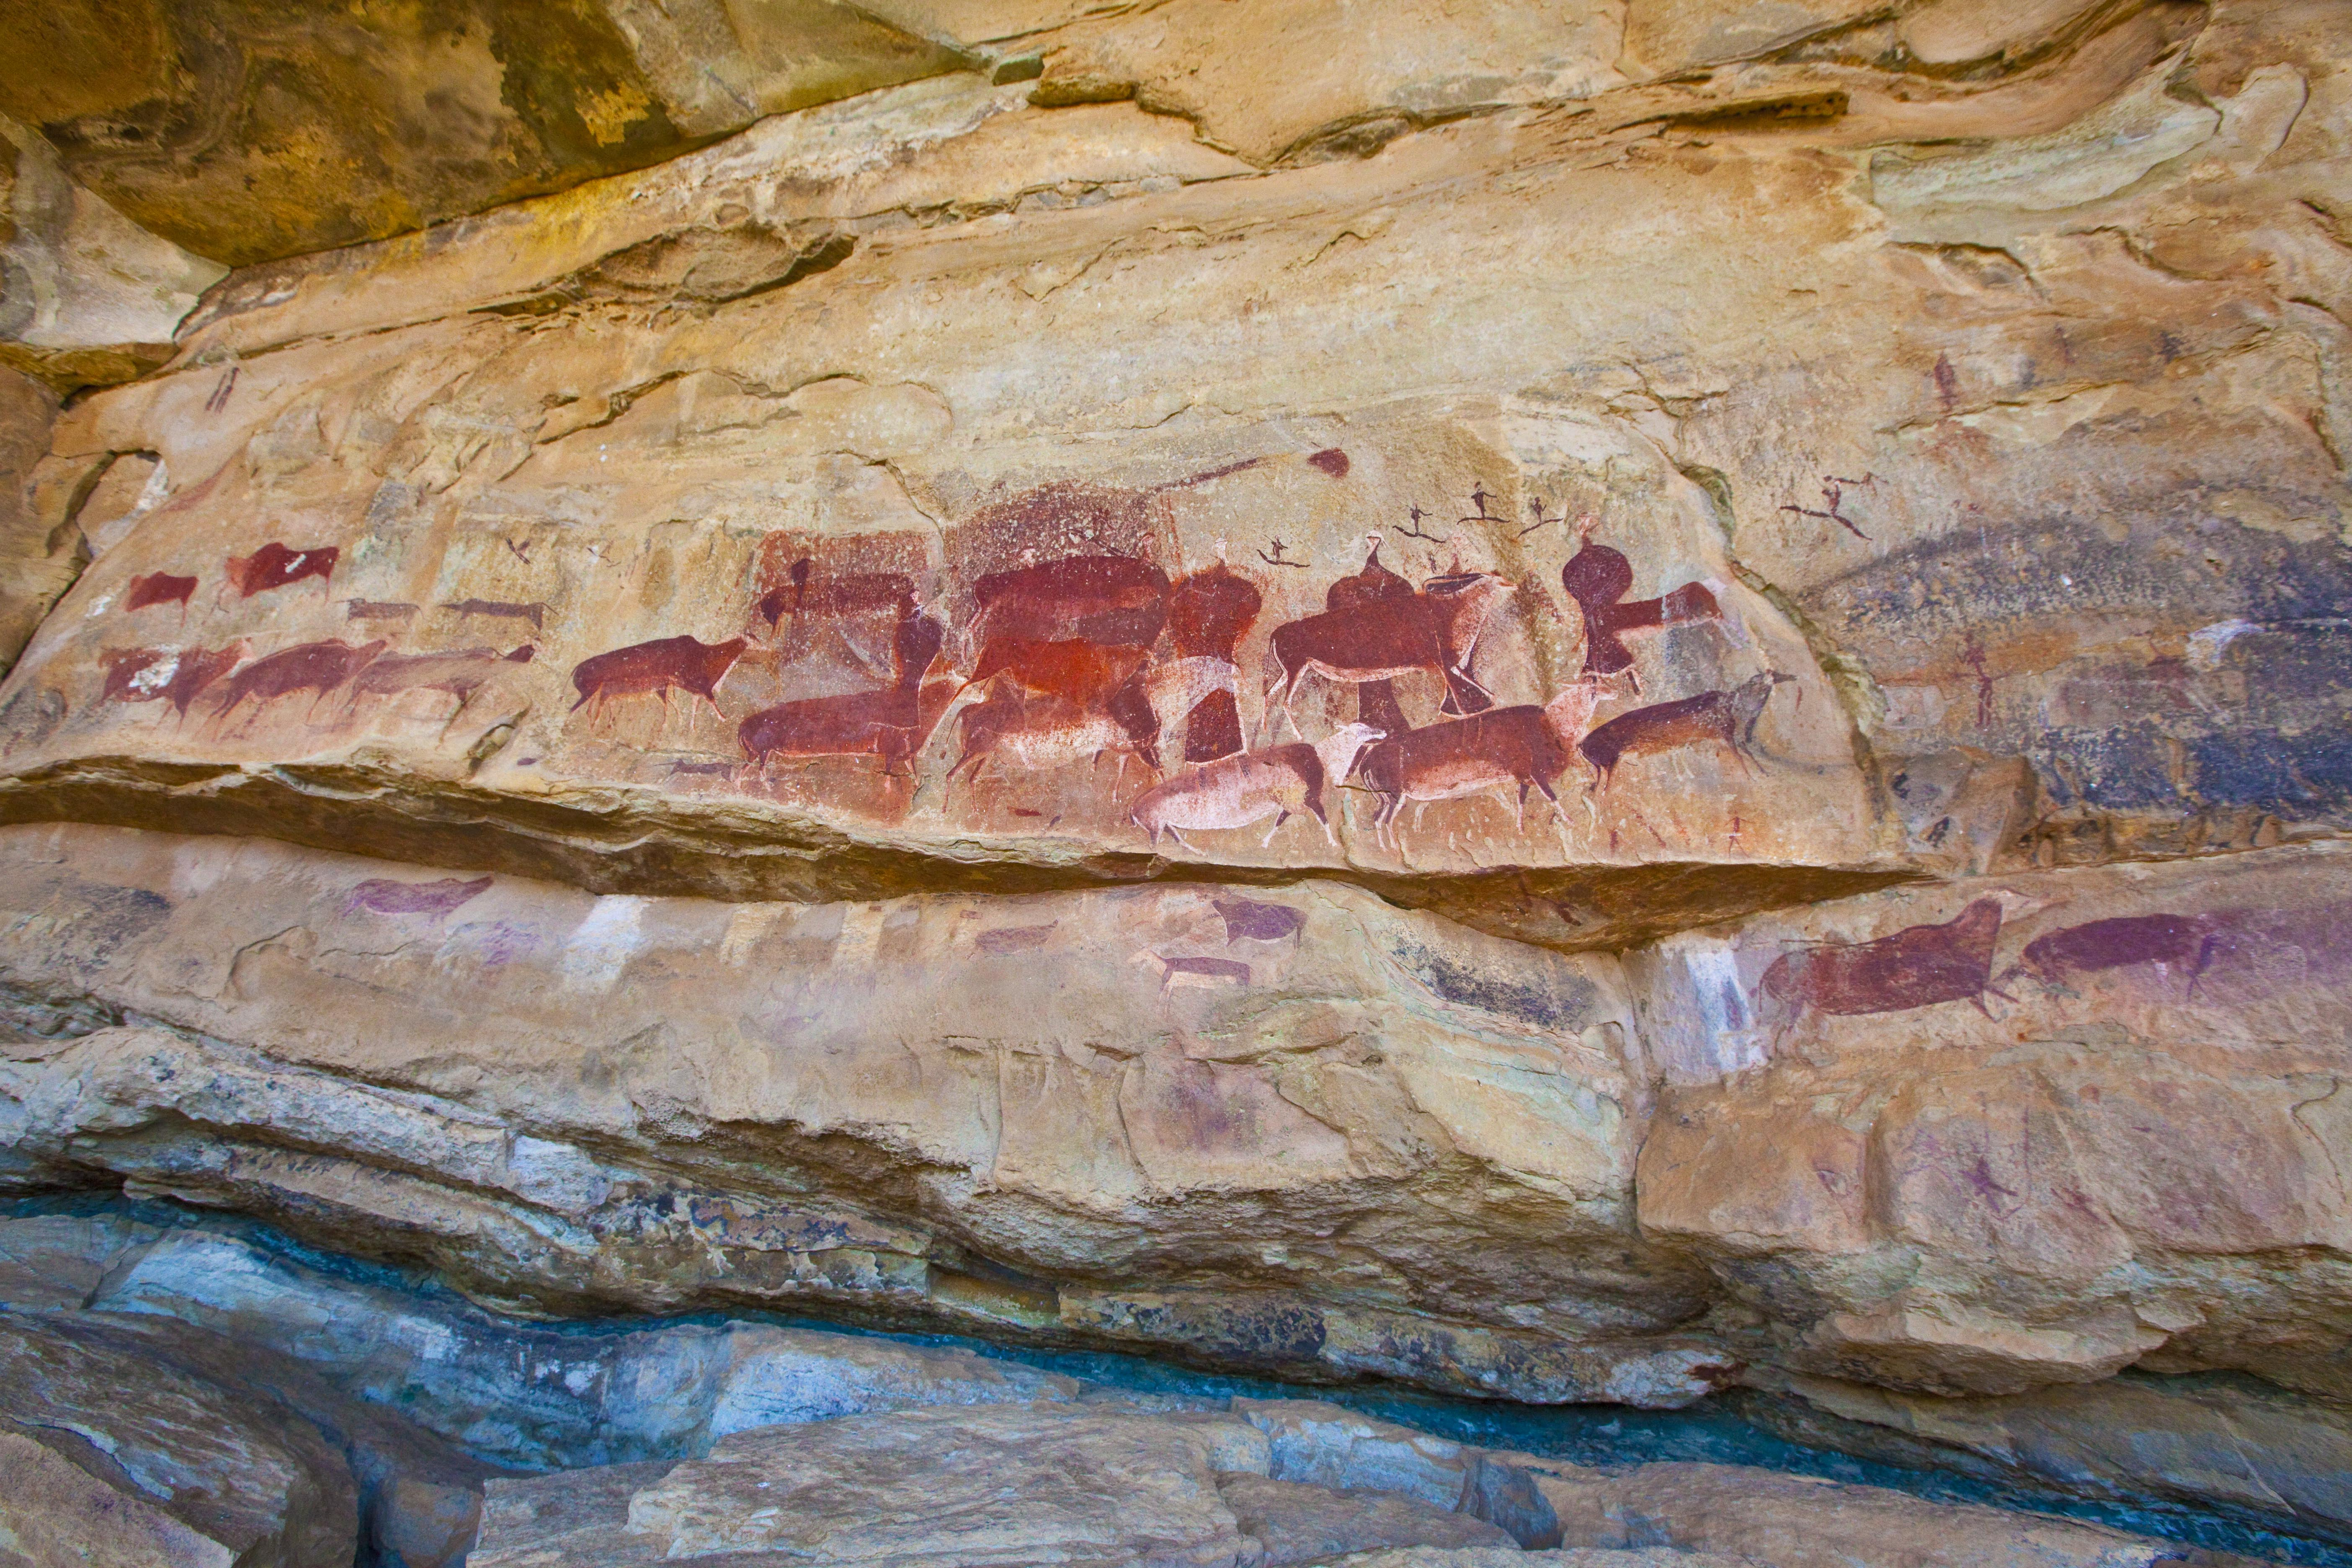 San Rock art at Kamberg Drakensberg Mountains, South Africa Photographed by Tom Till